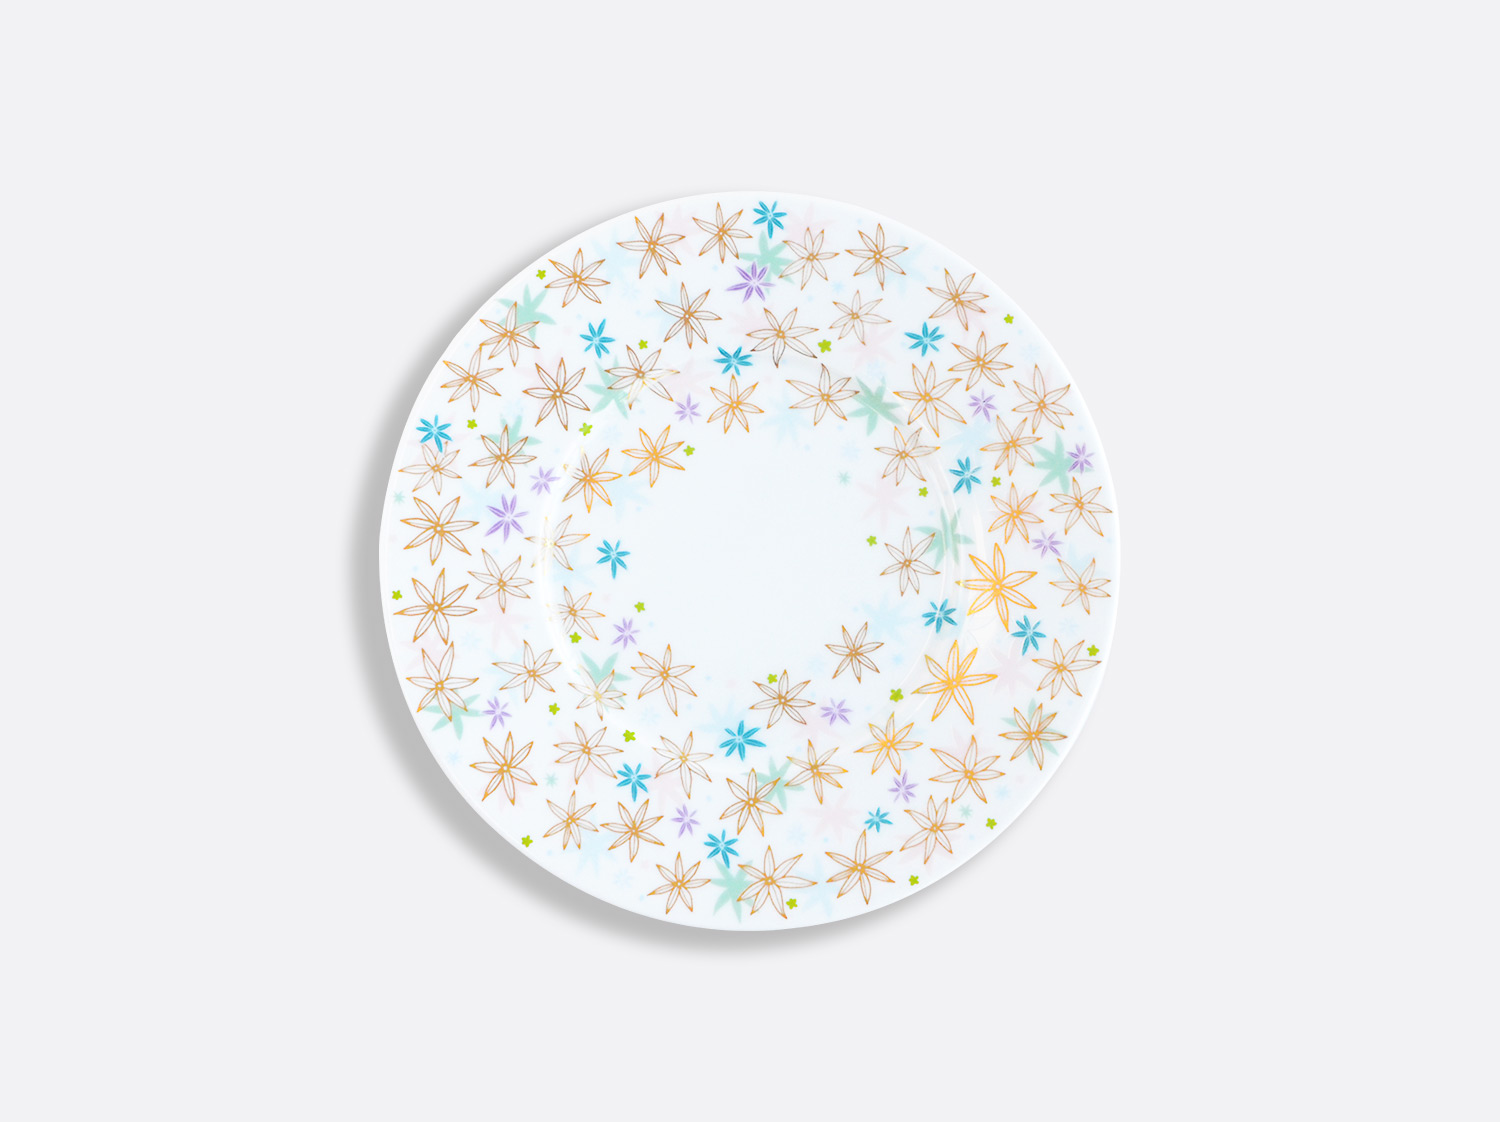 Assiette plate 16 cm en porcelaine de la collection FÉERIE - MICHAËL CAILLOUX Bernardaud